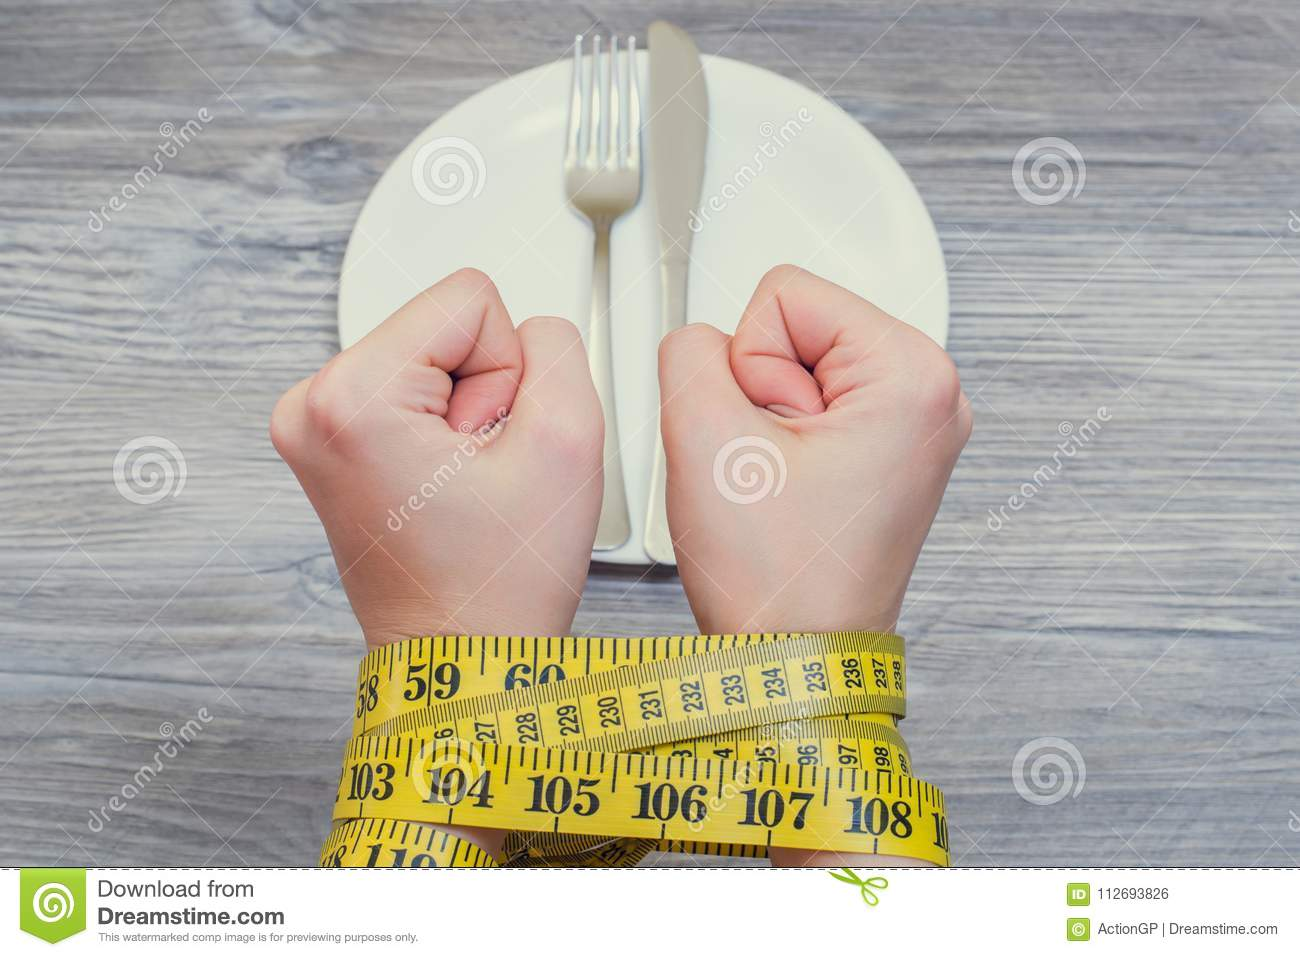 Health body care unhealthy eating dieting starving weight loss slimming. Concept of bad food habbits and unhealthy eating. Woman`